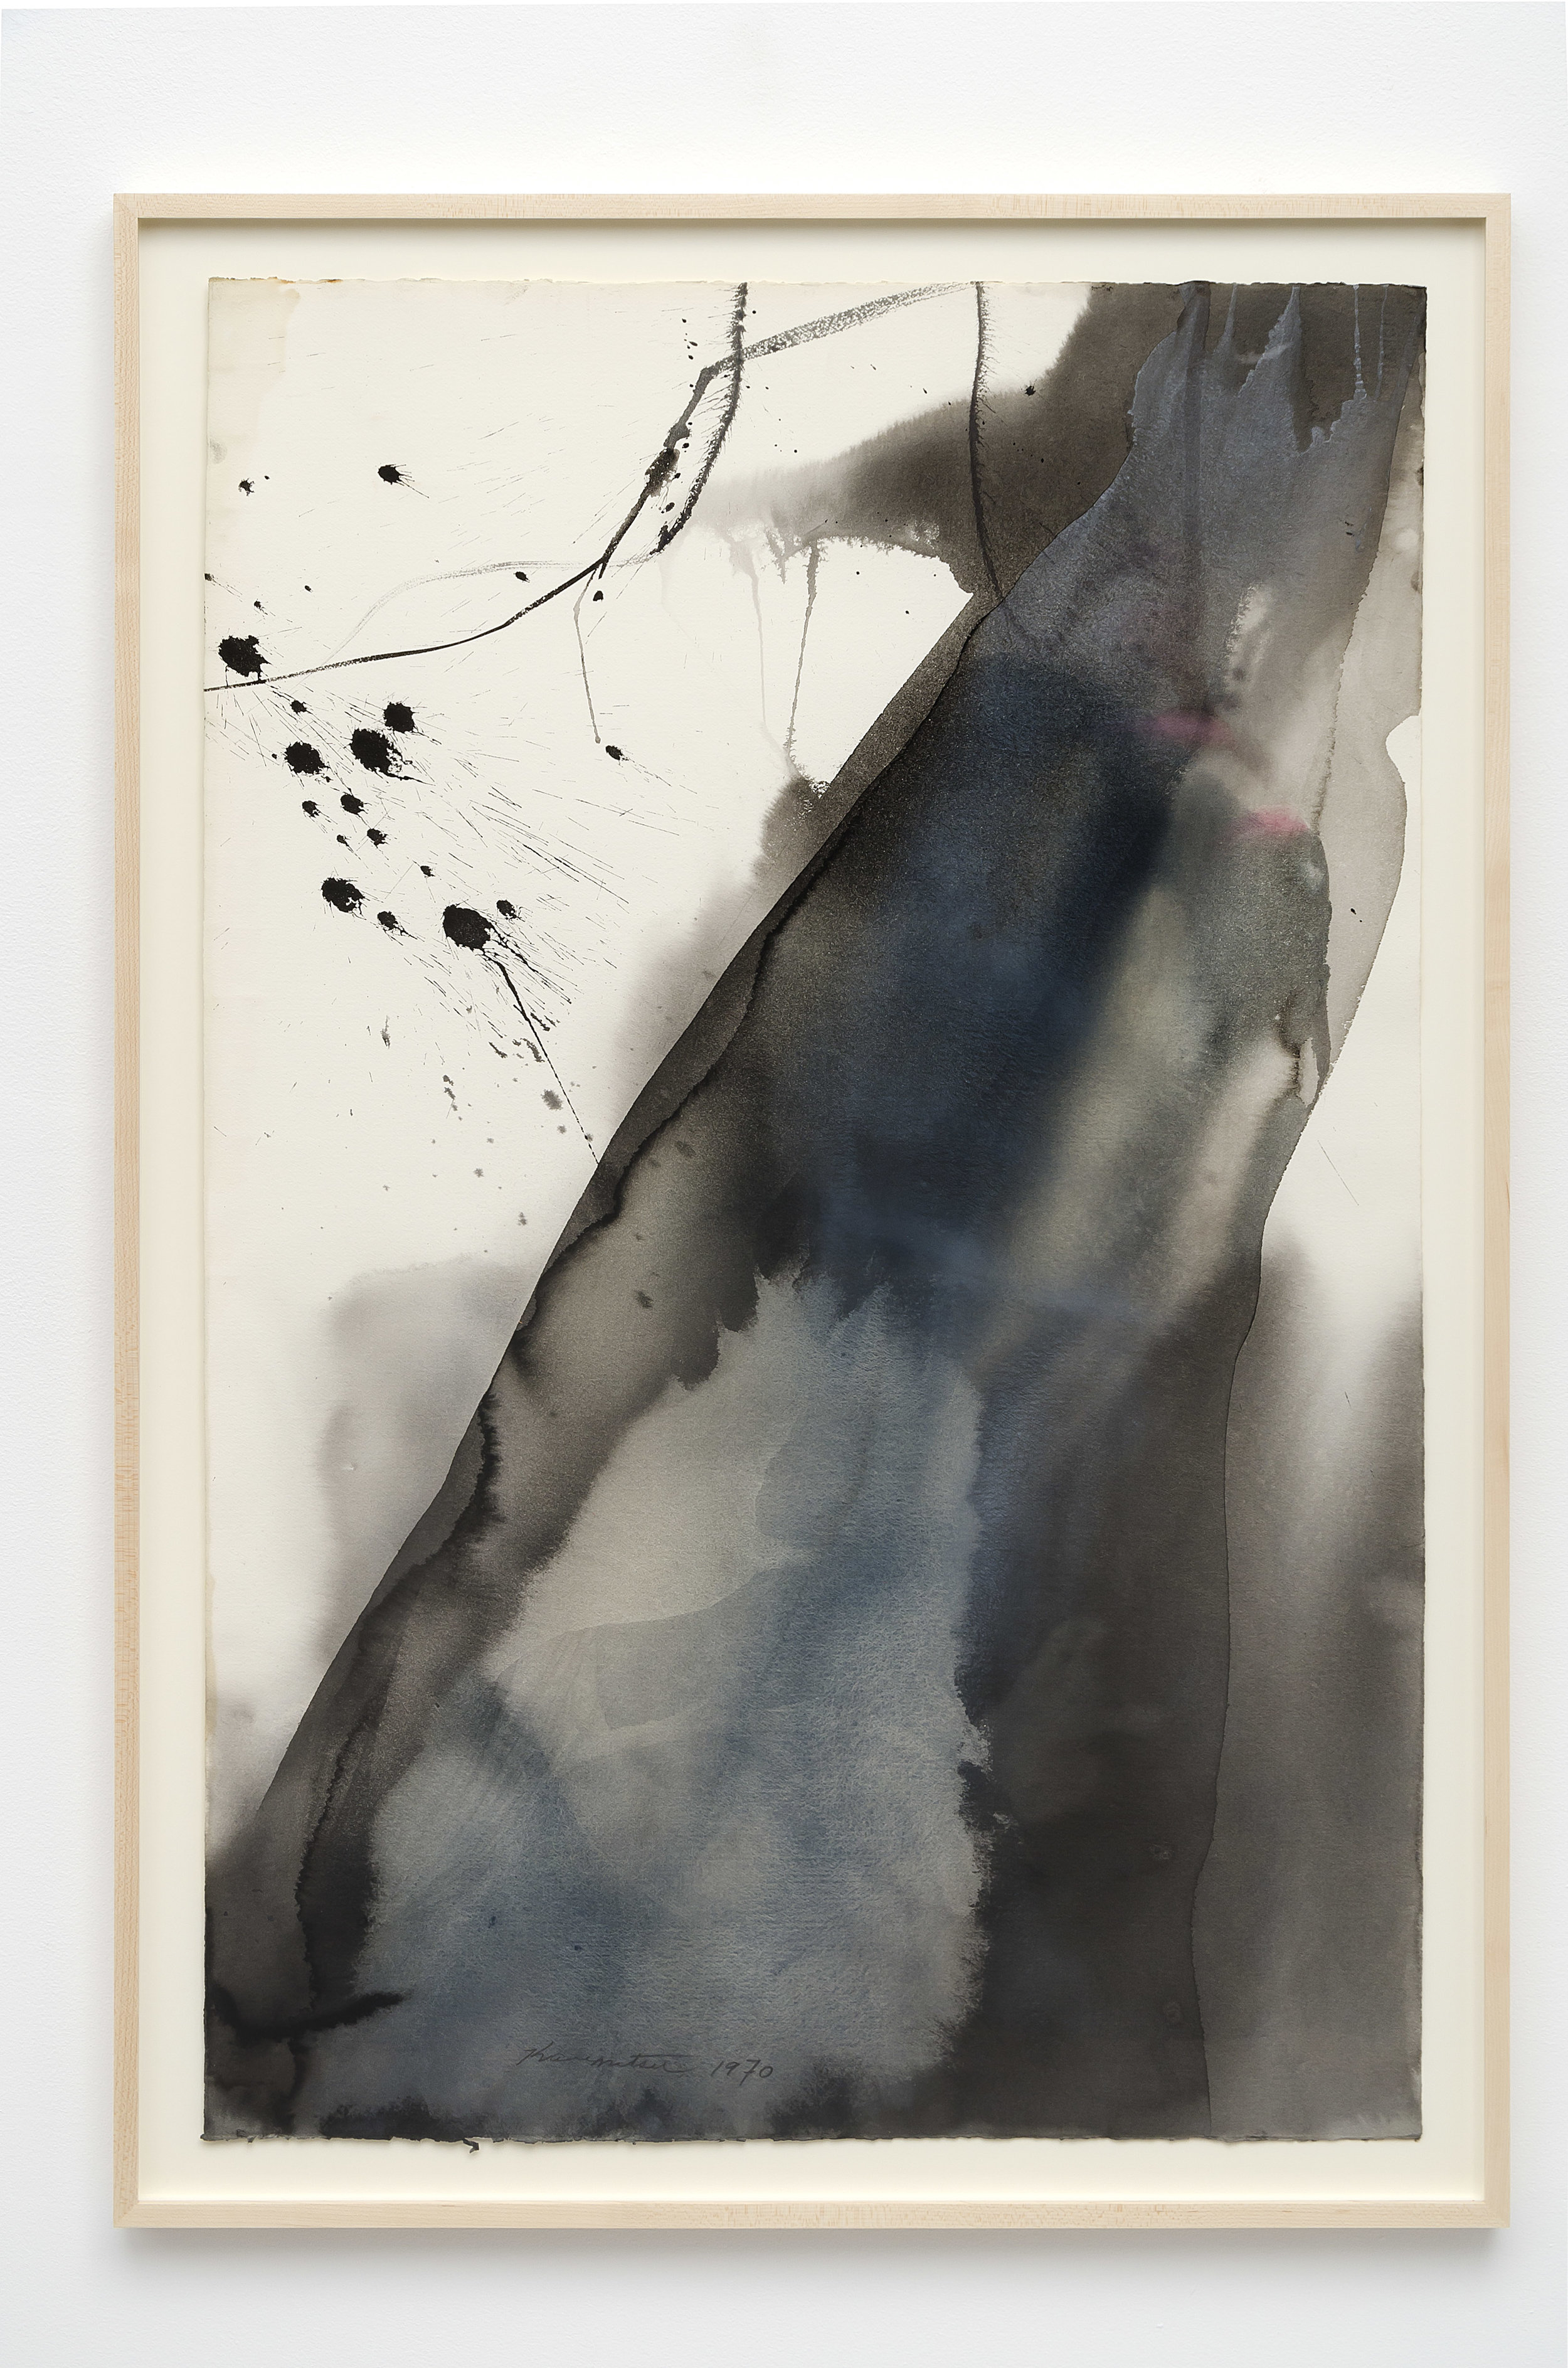 Untitled   1970  sumi and watercolor on paper  43.75 x 29.25 inches, 111.1 x 74.3 centimeters